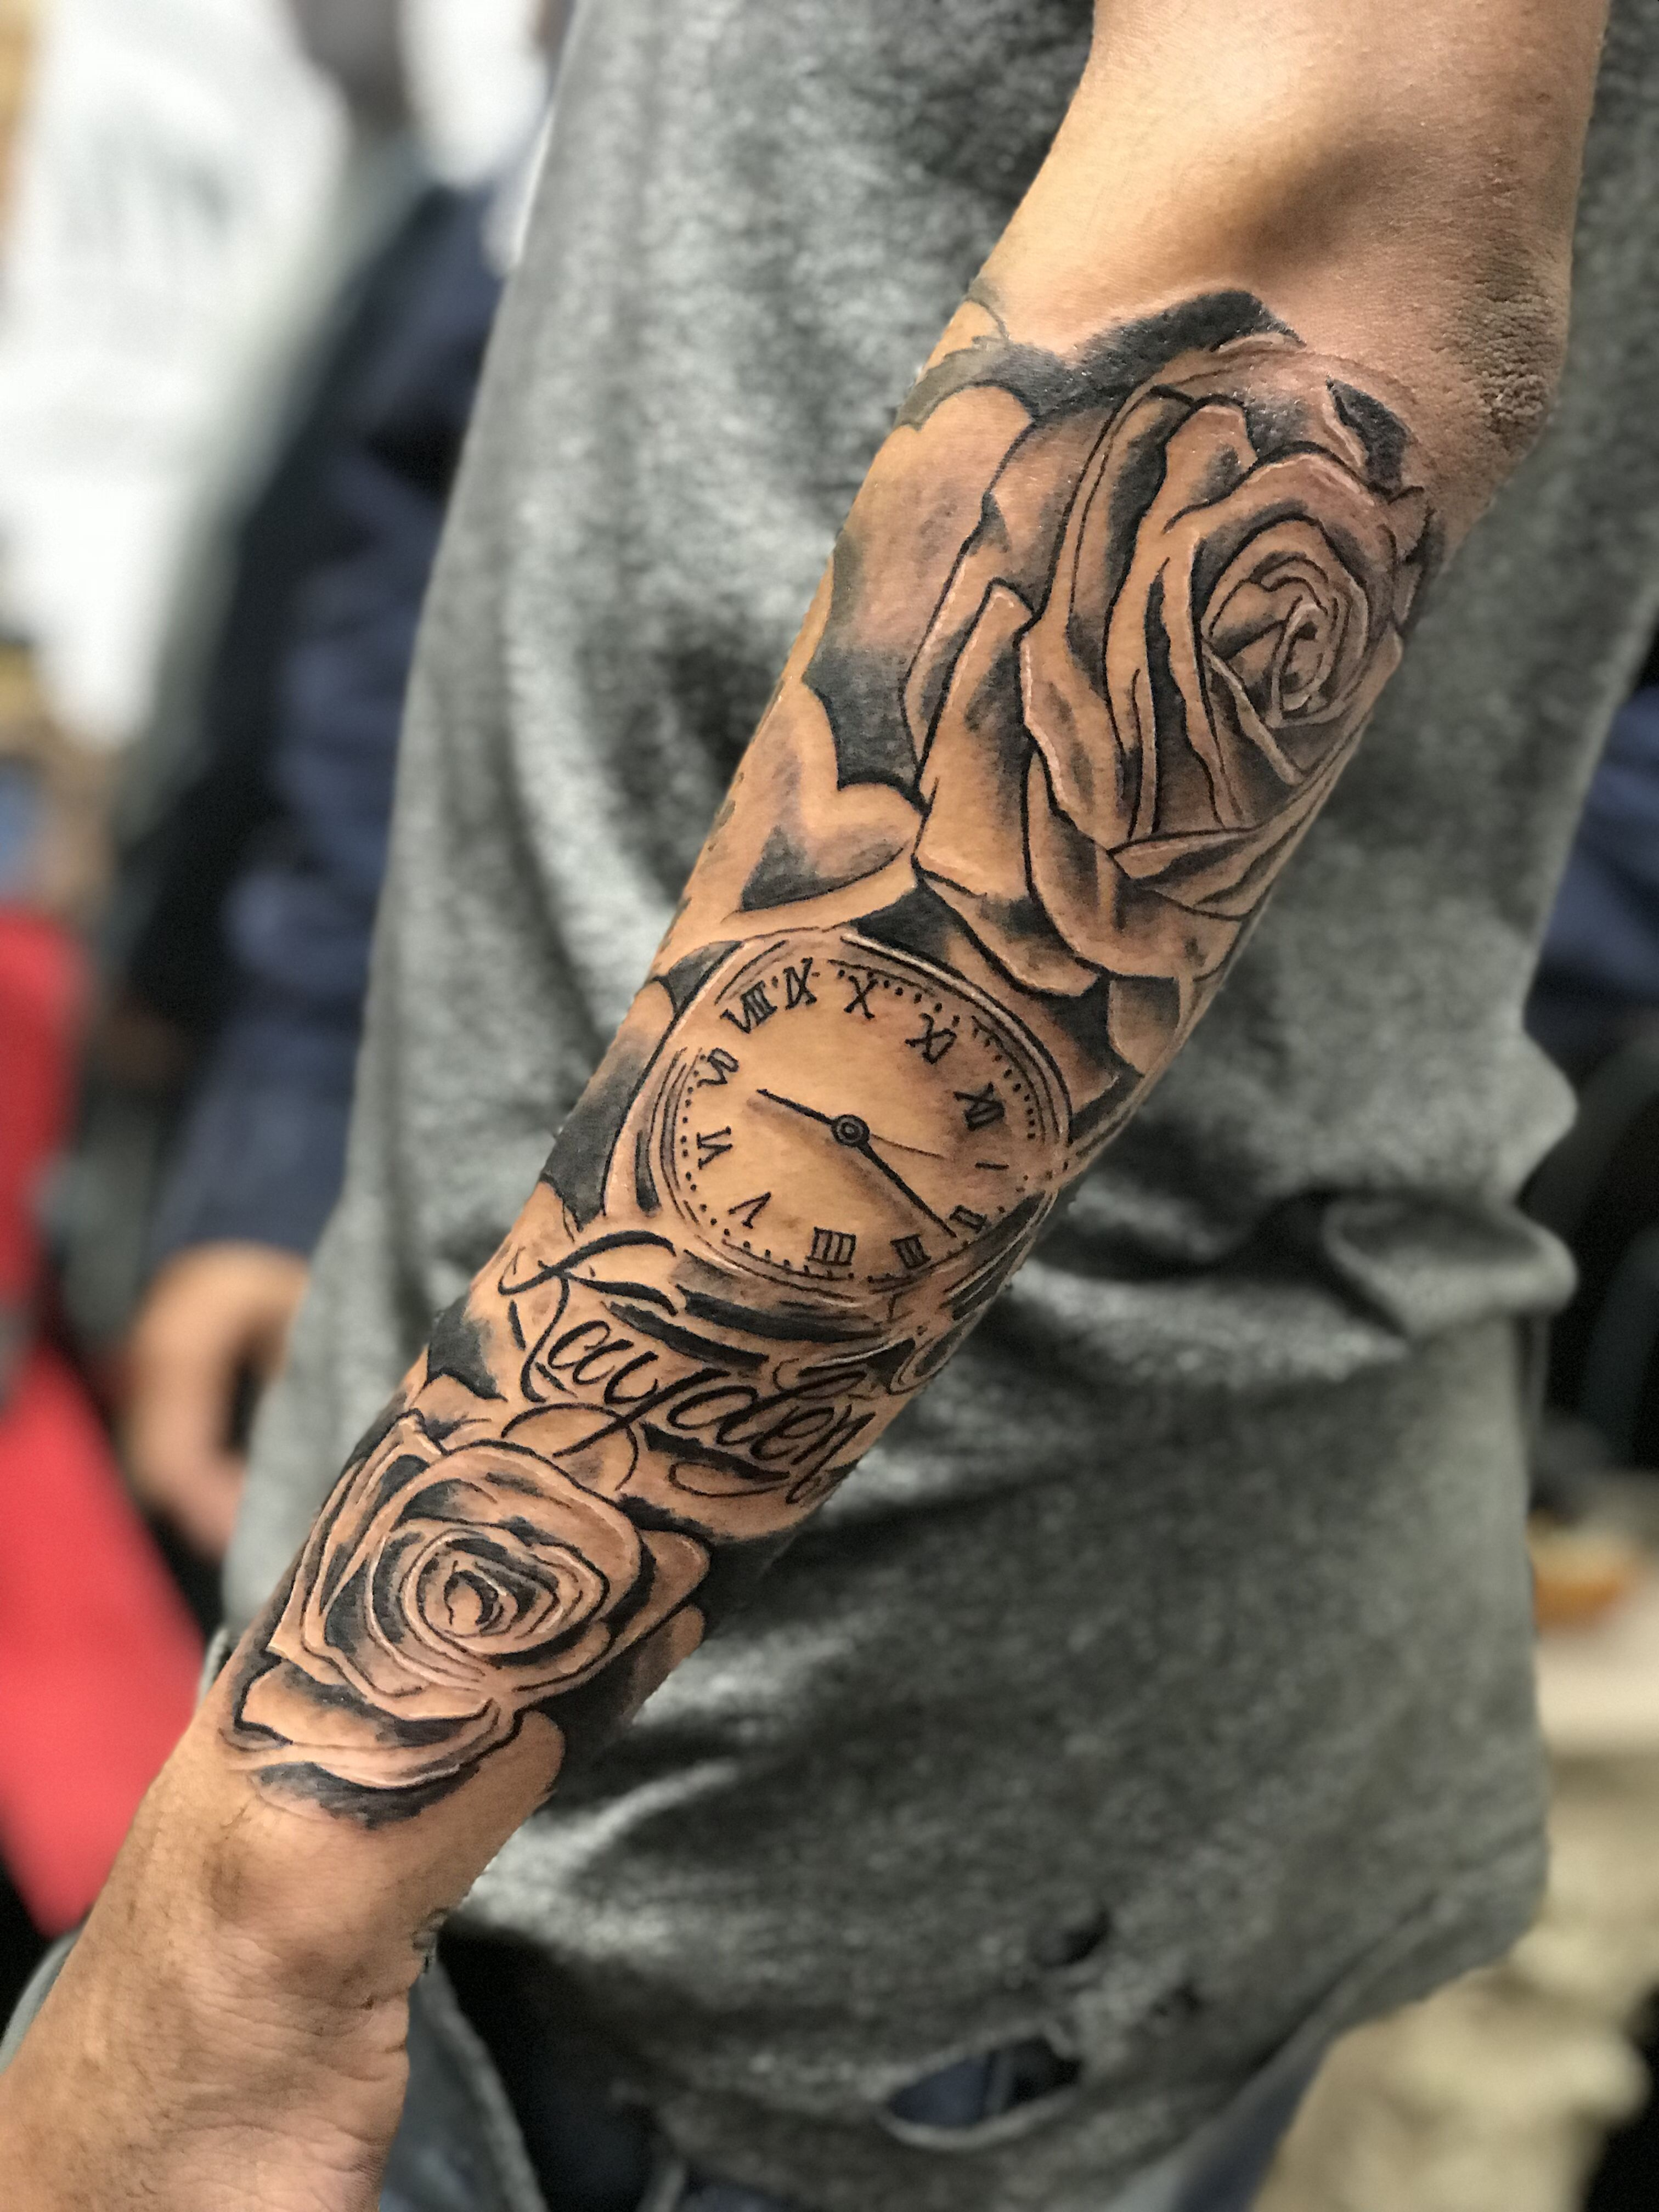 125 Best Arm Tattoos For Men Cool Ideas Designs 2020 Guide Cool Arm Tattoos Arm Tattoos For Guys Upper Arm Tattoos